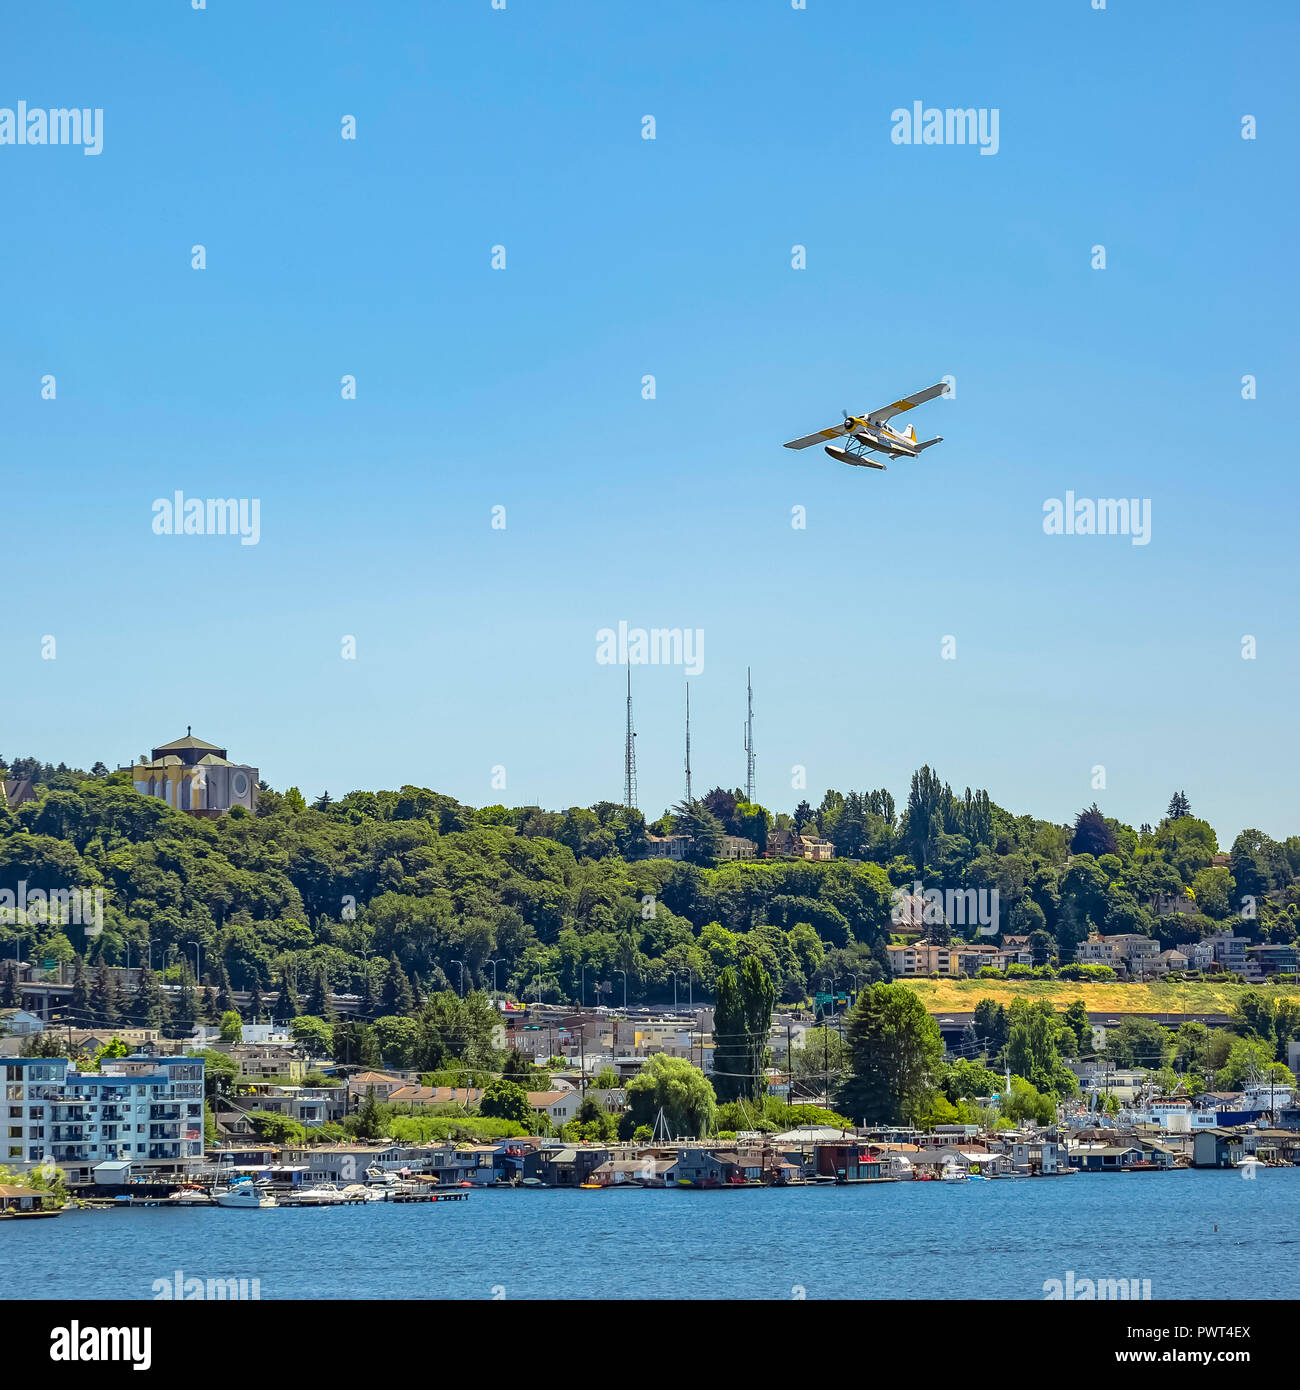 Float plane flying over Union Lake and city - Stock Image